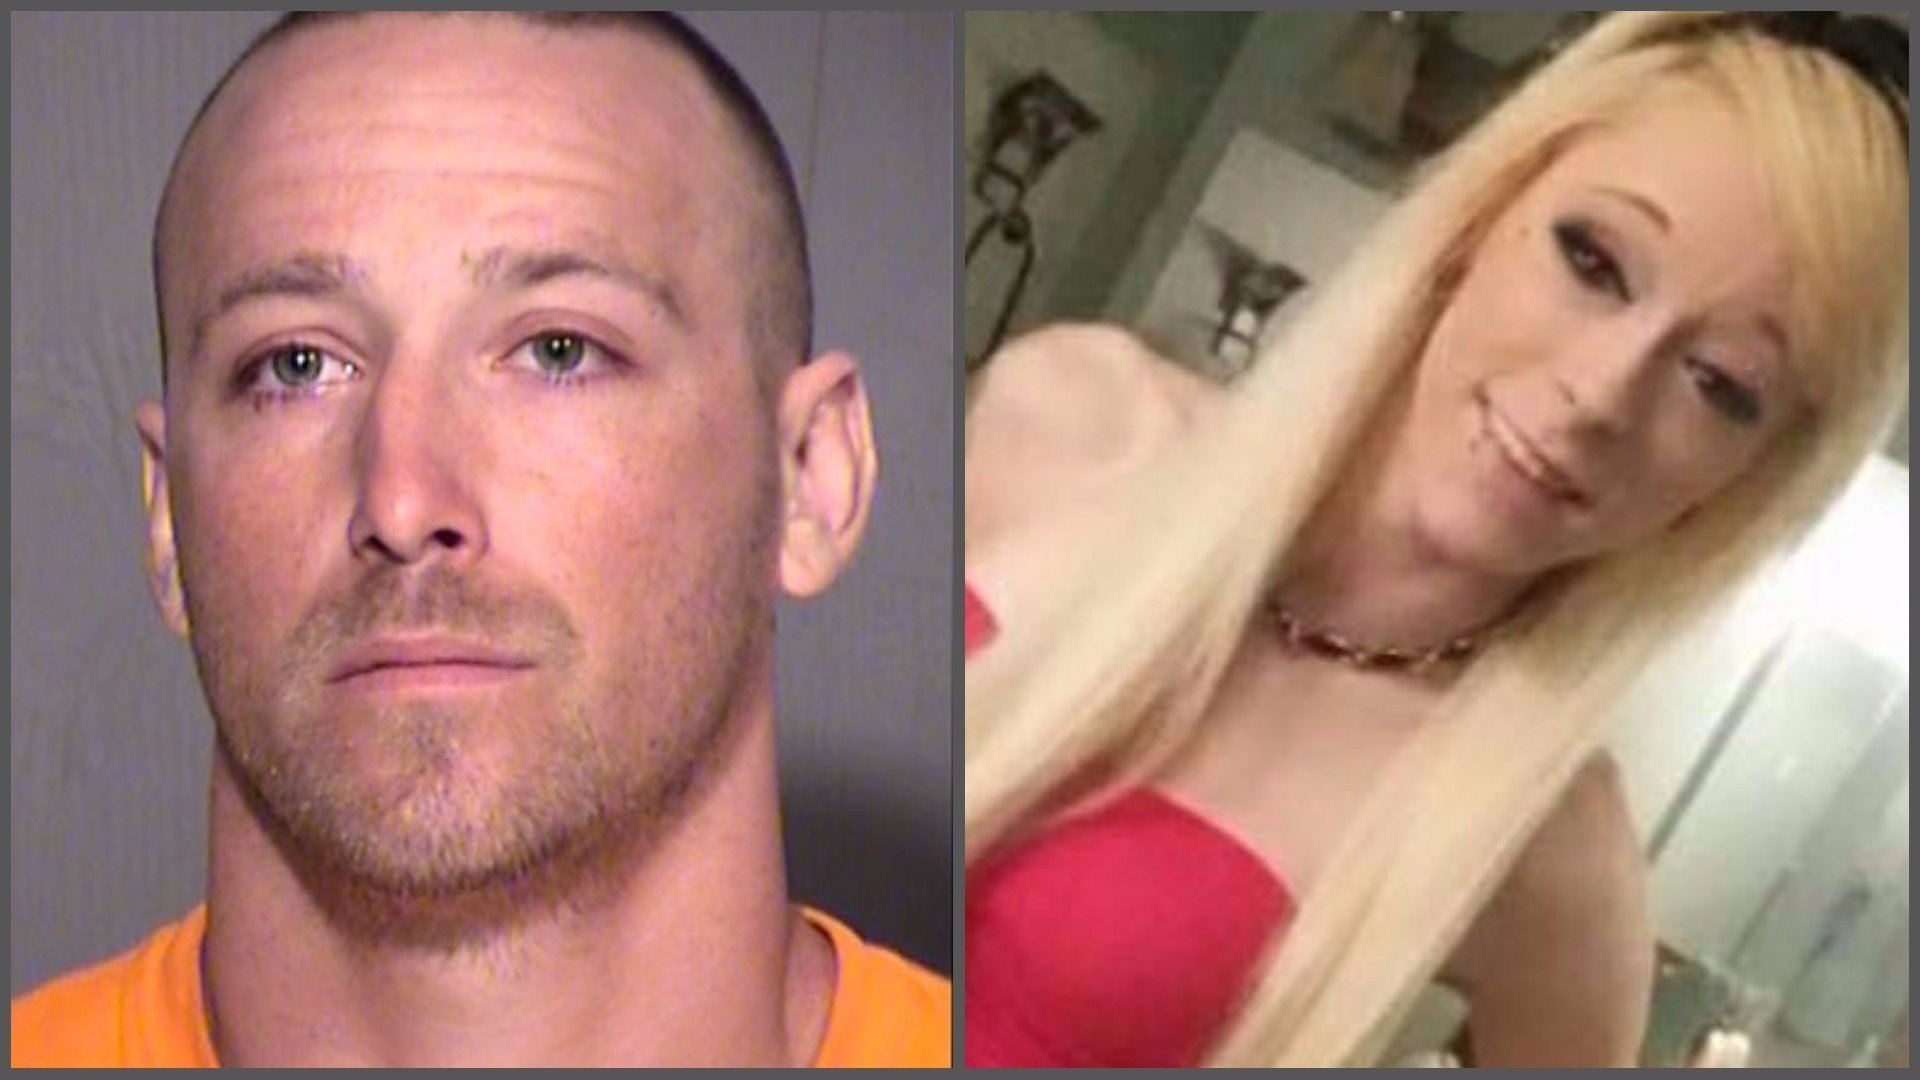 Maxx Bowe has been booked on a charge of first-degree murder in the death of Taylorlyn Nelson. (Source: Maricopa County Sheriff's Office and Phoenix Police Department)